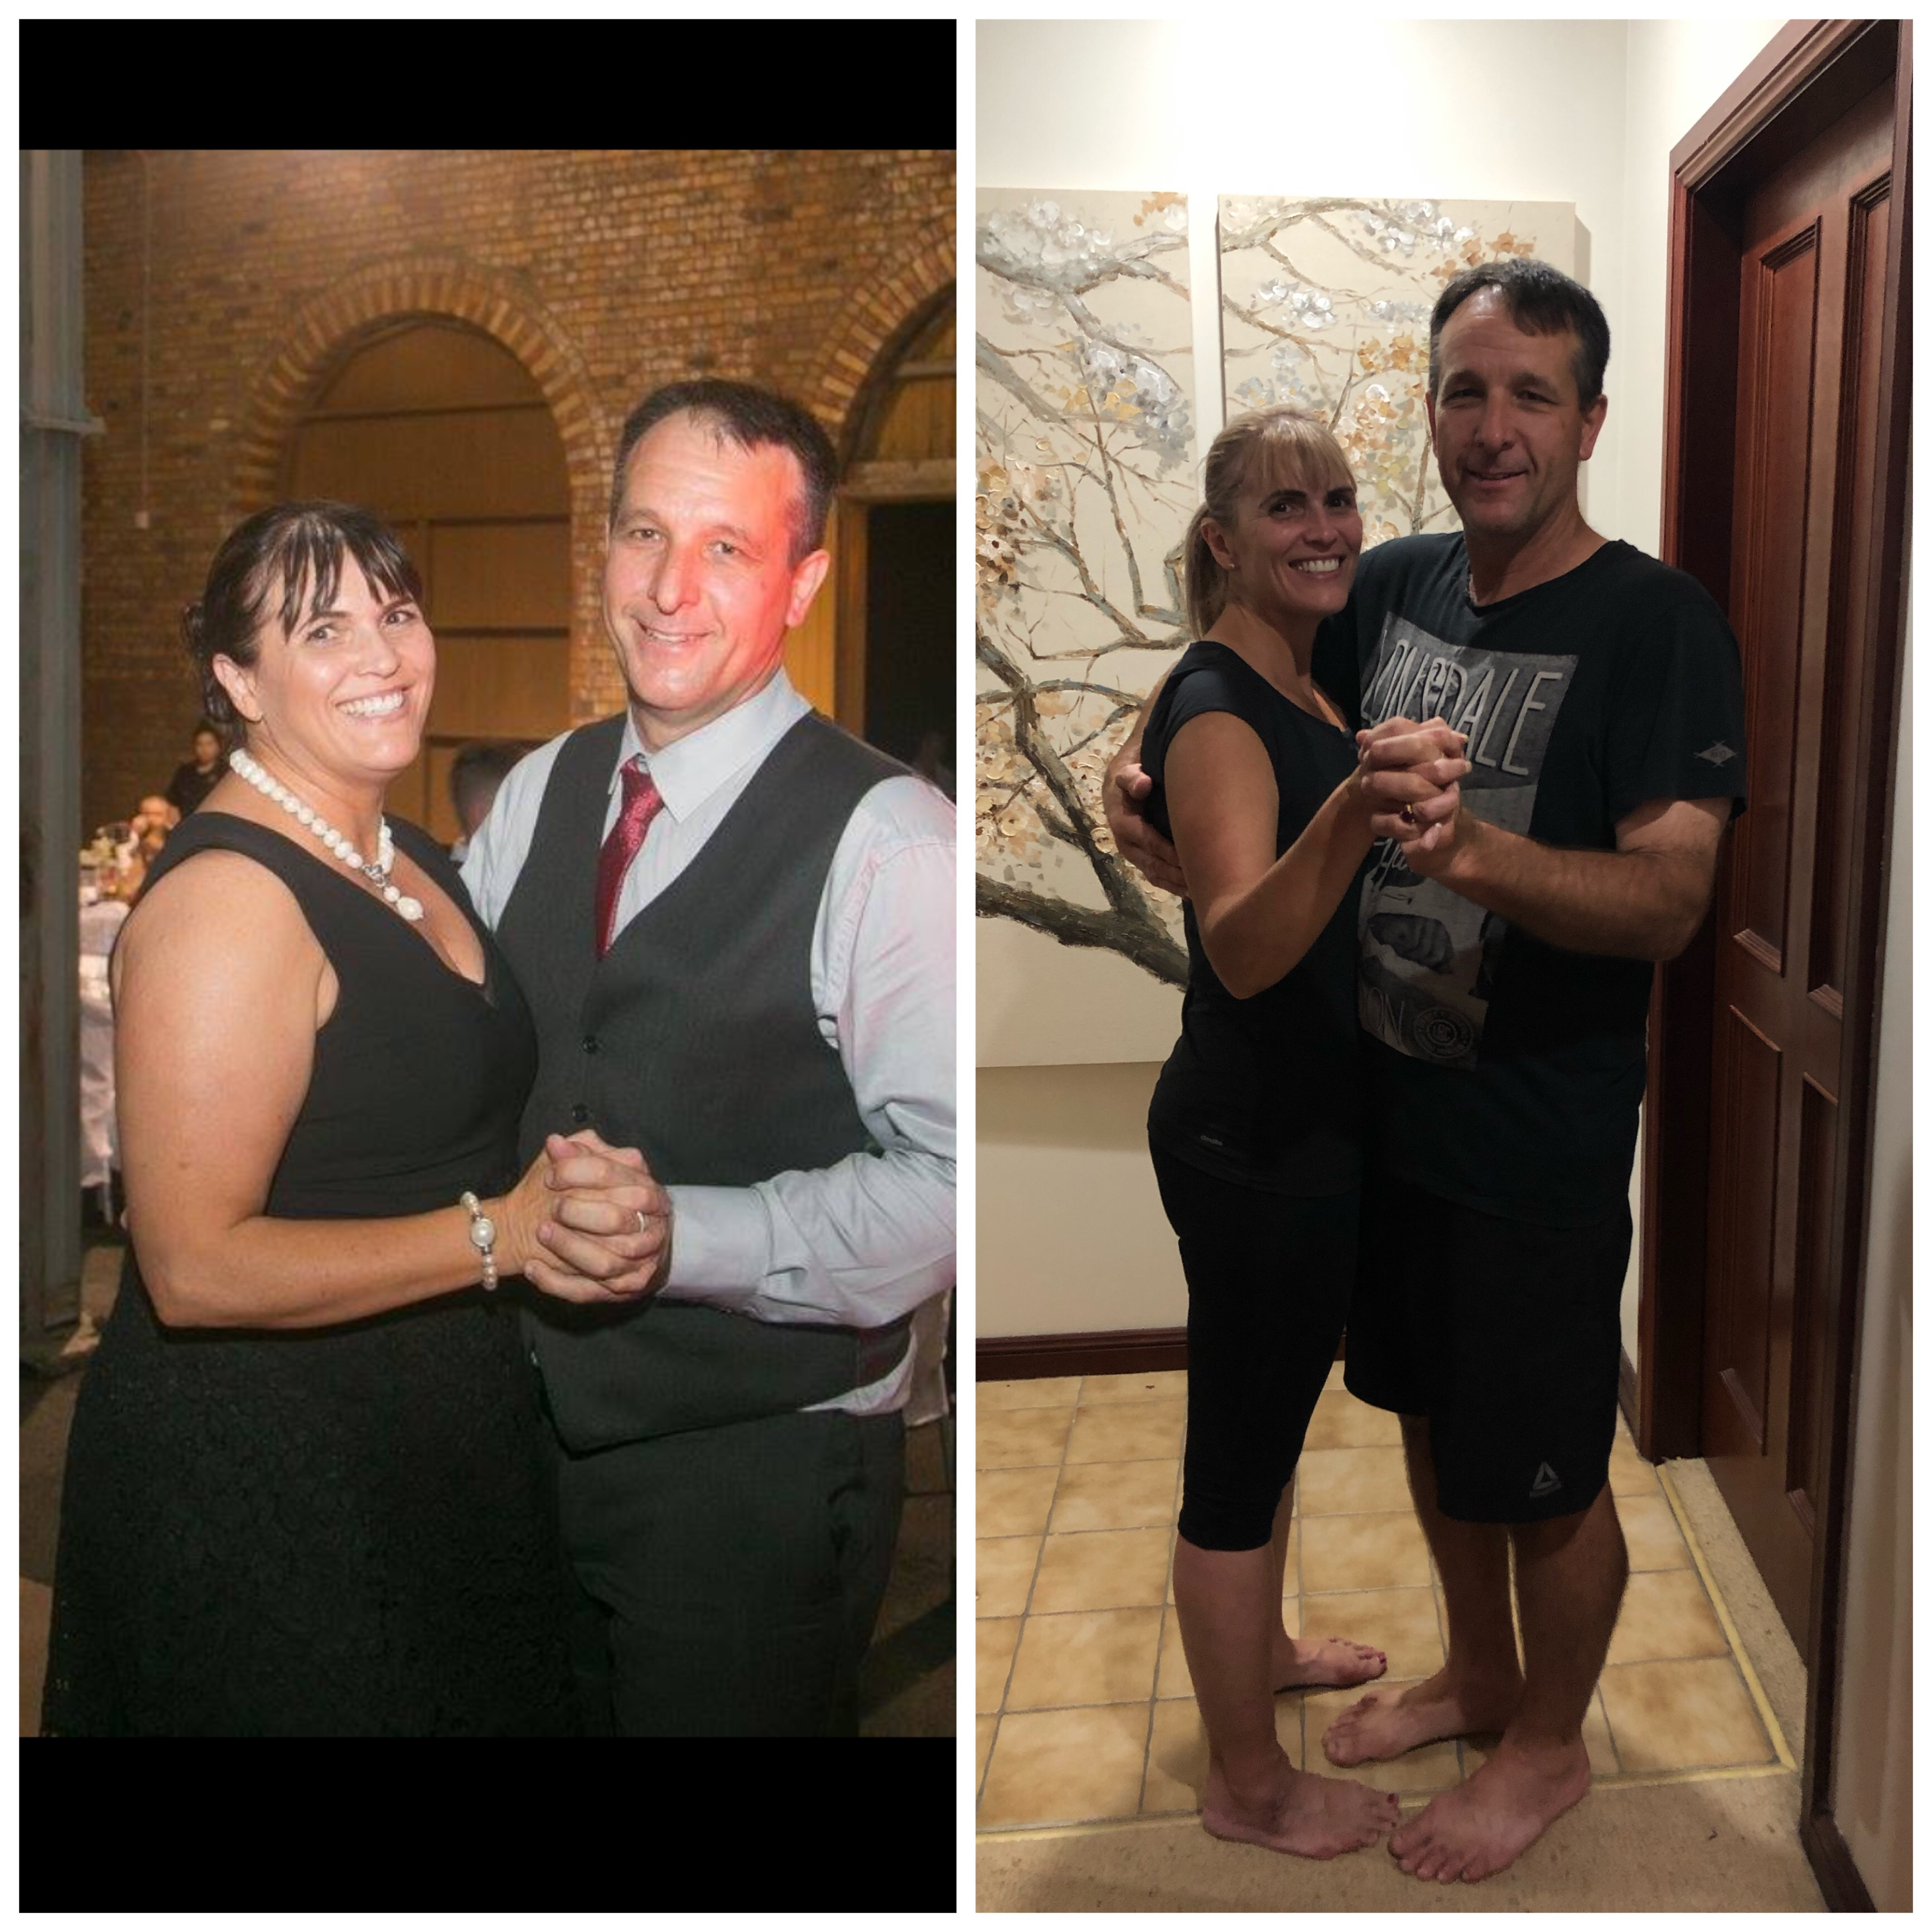 Megan – From Obese to Beast